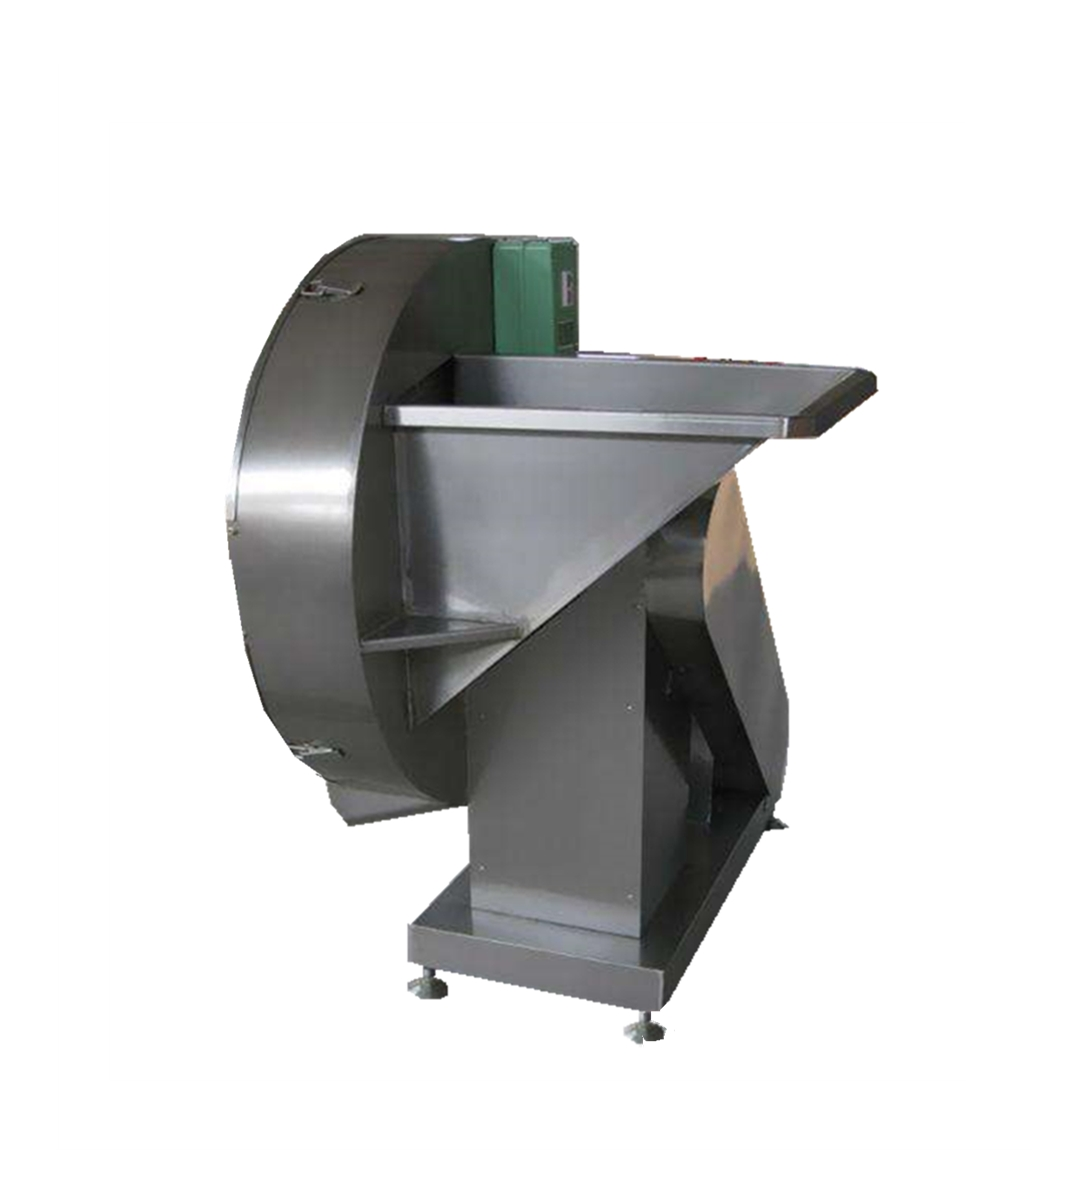 Frozen Meat Slicer / Slicer